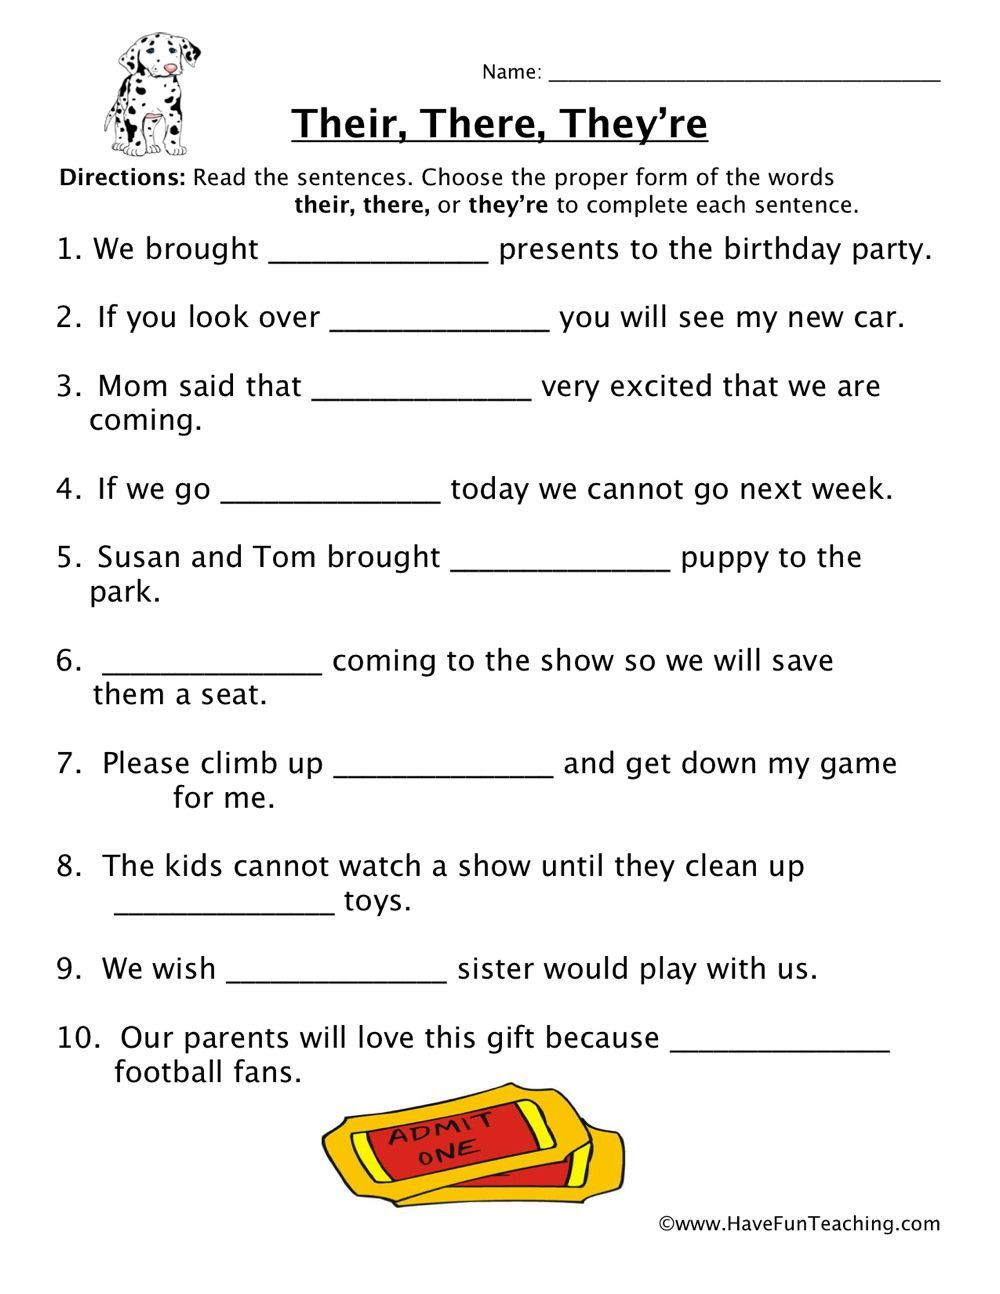 Homonyms Worksheets 5th Grade Homophones Worksheet 5th Grade In 2020